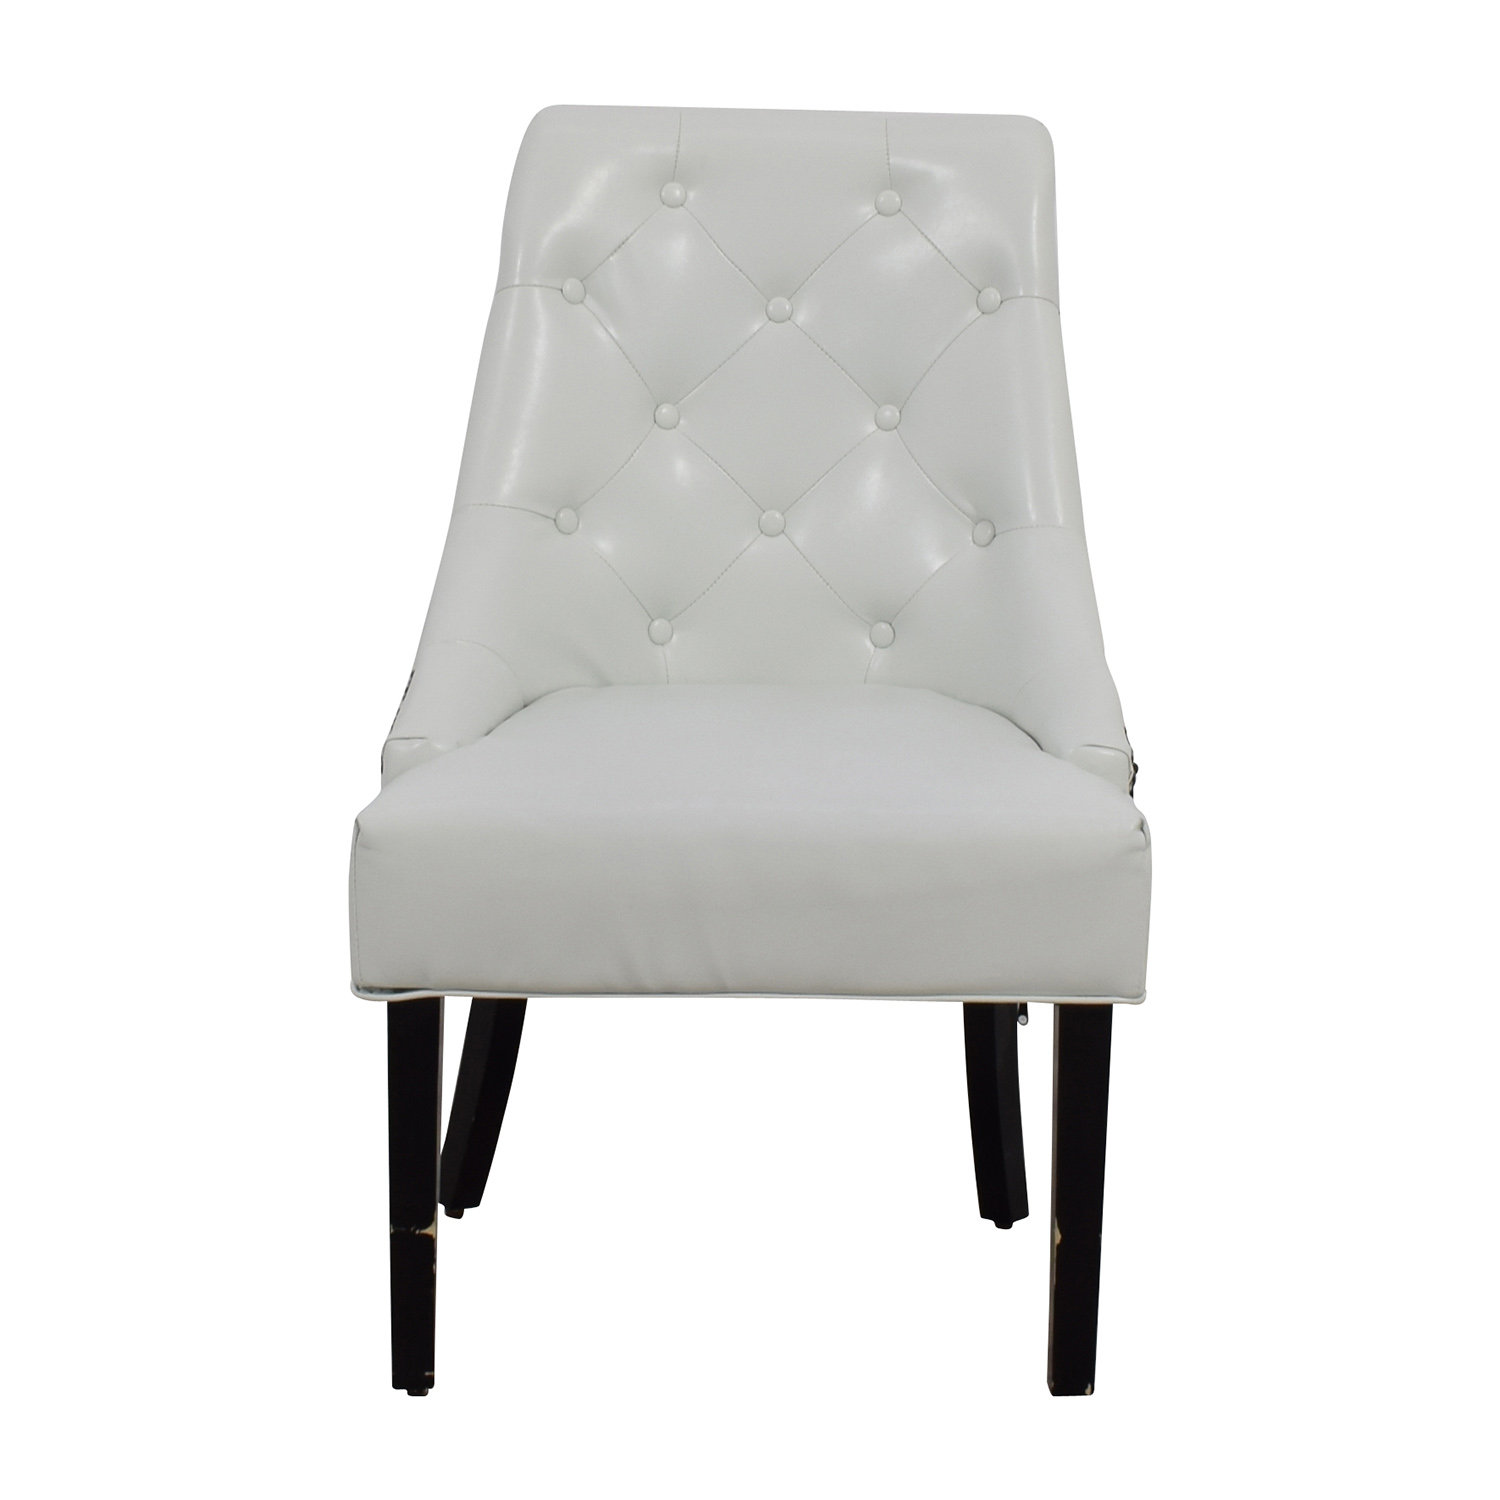 white chairs for sale chair converts to bed used